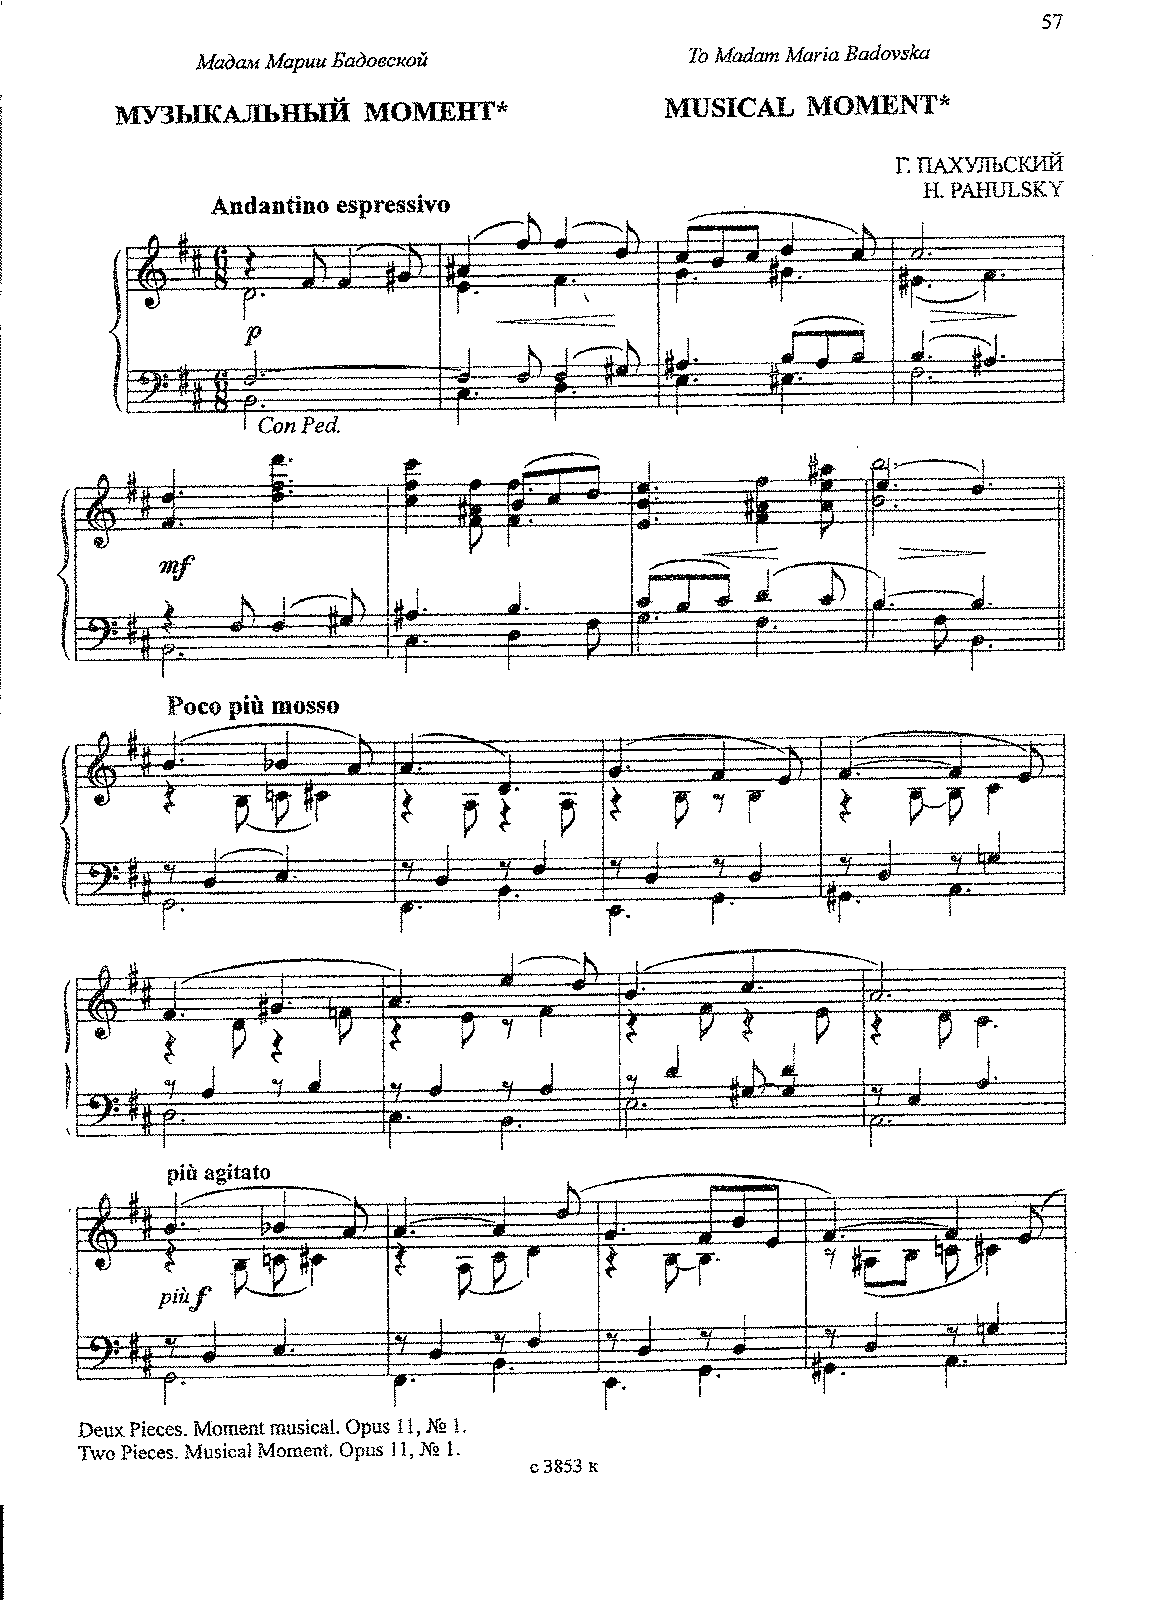 PMLP76112-Deux Pieces, OP. 1, No 1.pdf